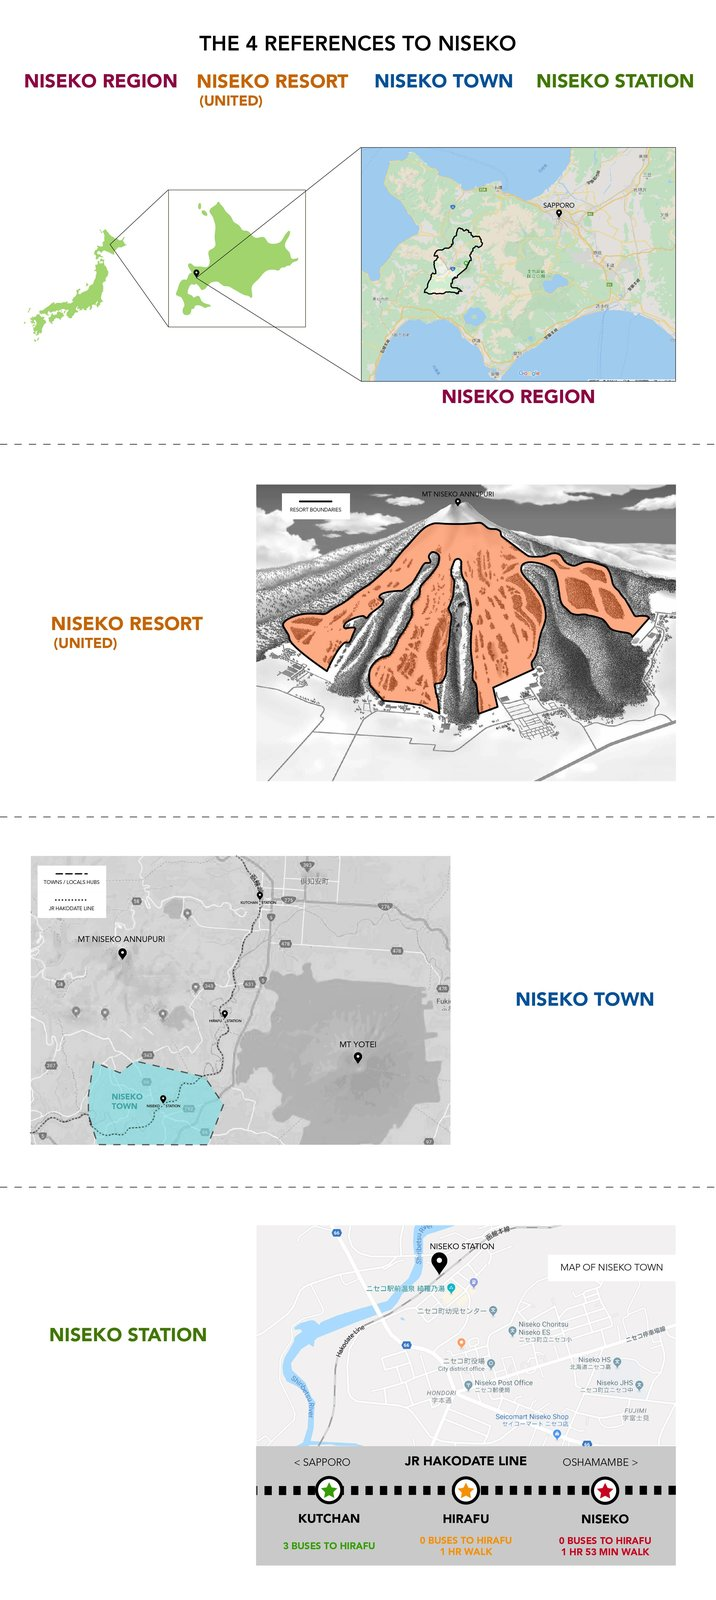 4 common references made to Niseko, Japan.